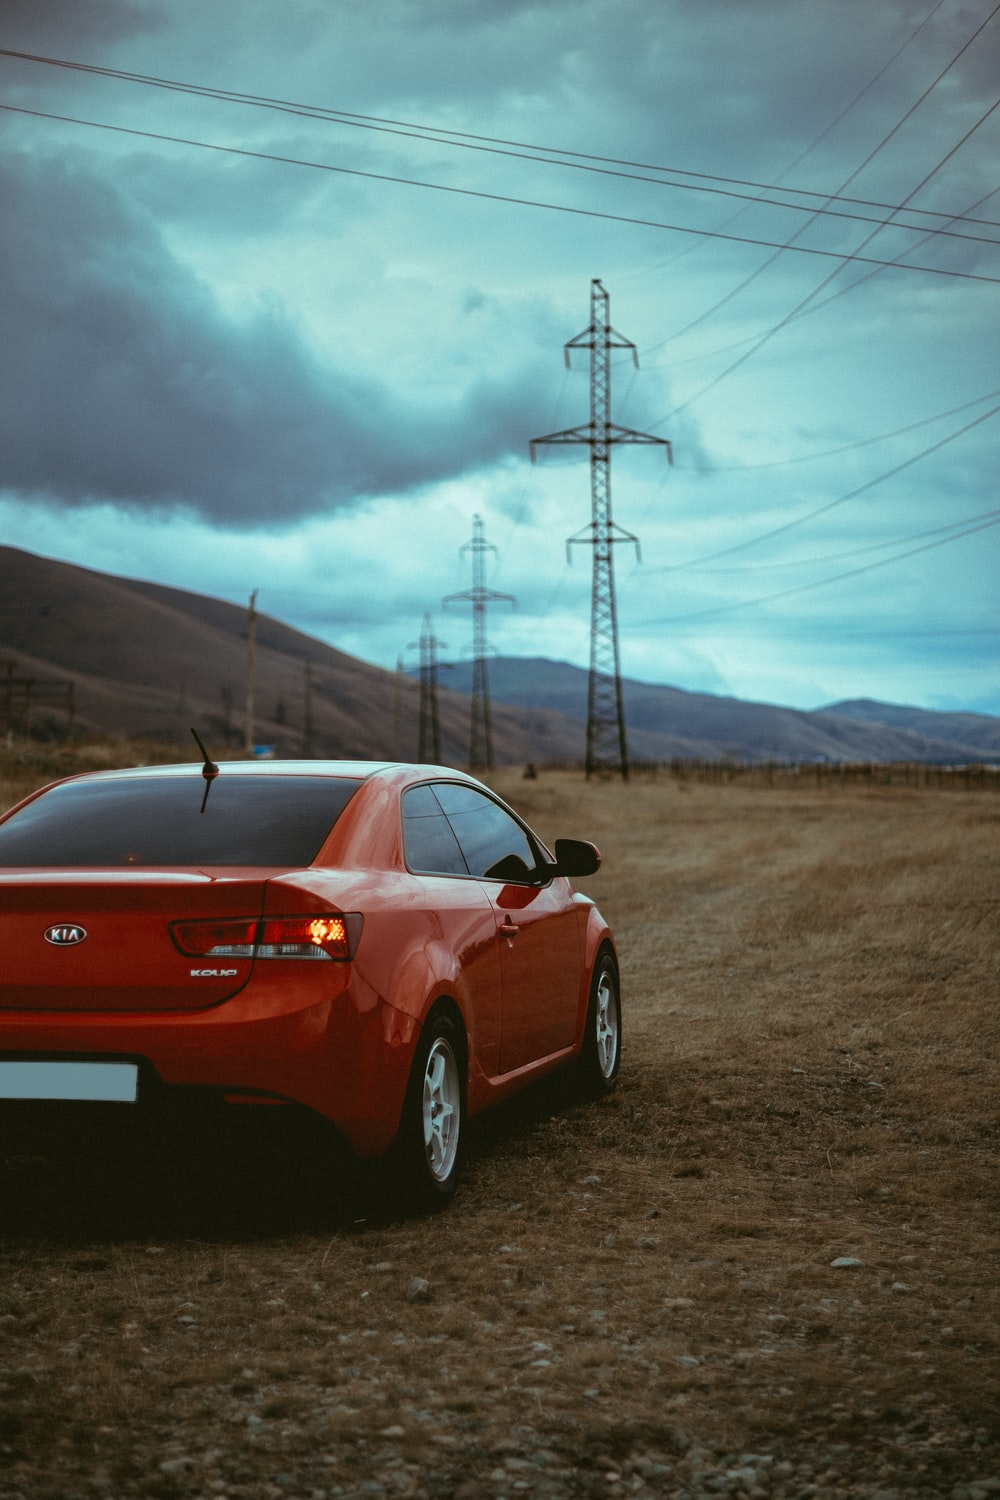 red Hyundai coupe near transmission tower